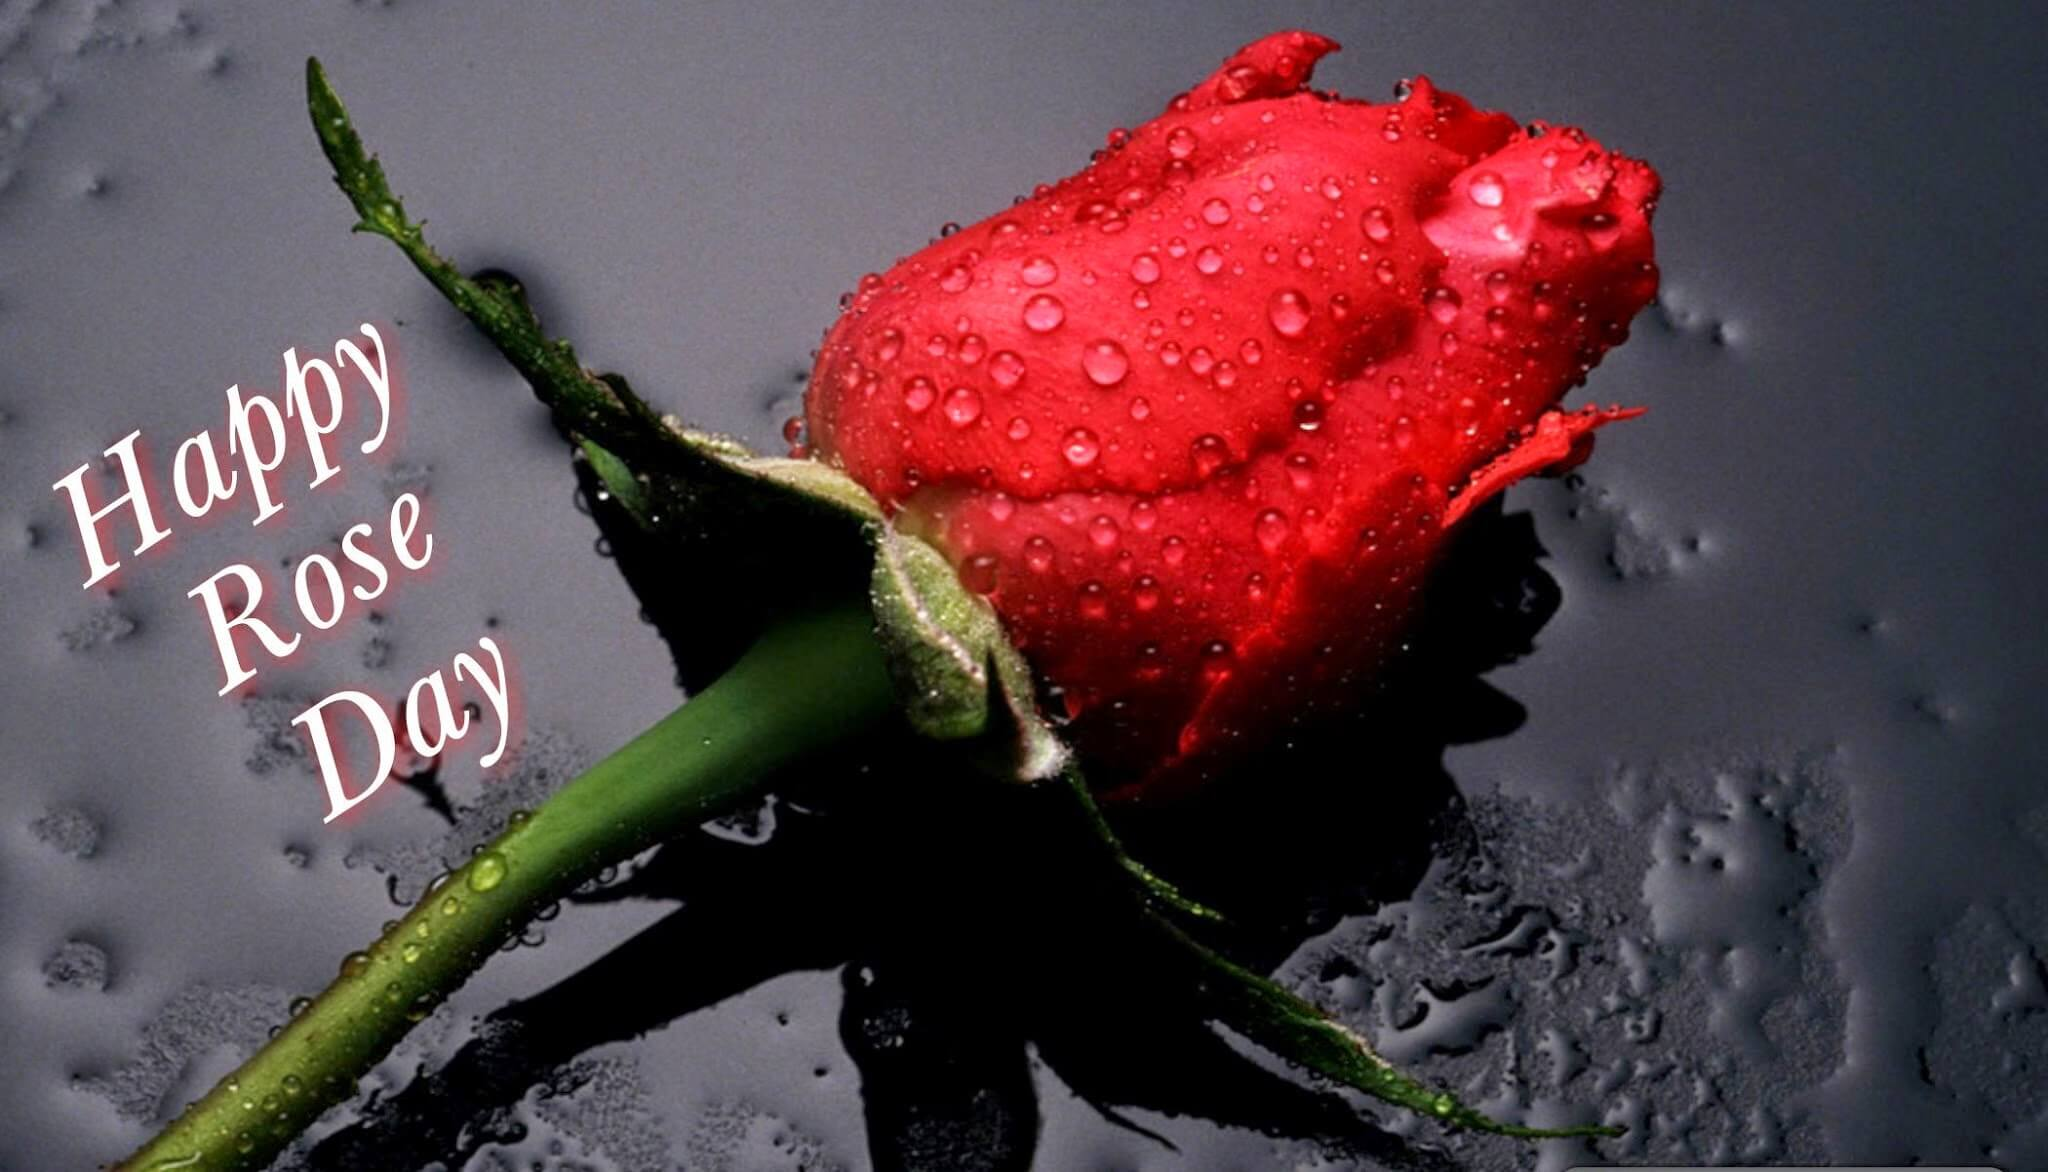 happy rose day wishes greetings image picture background hd wallpaper